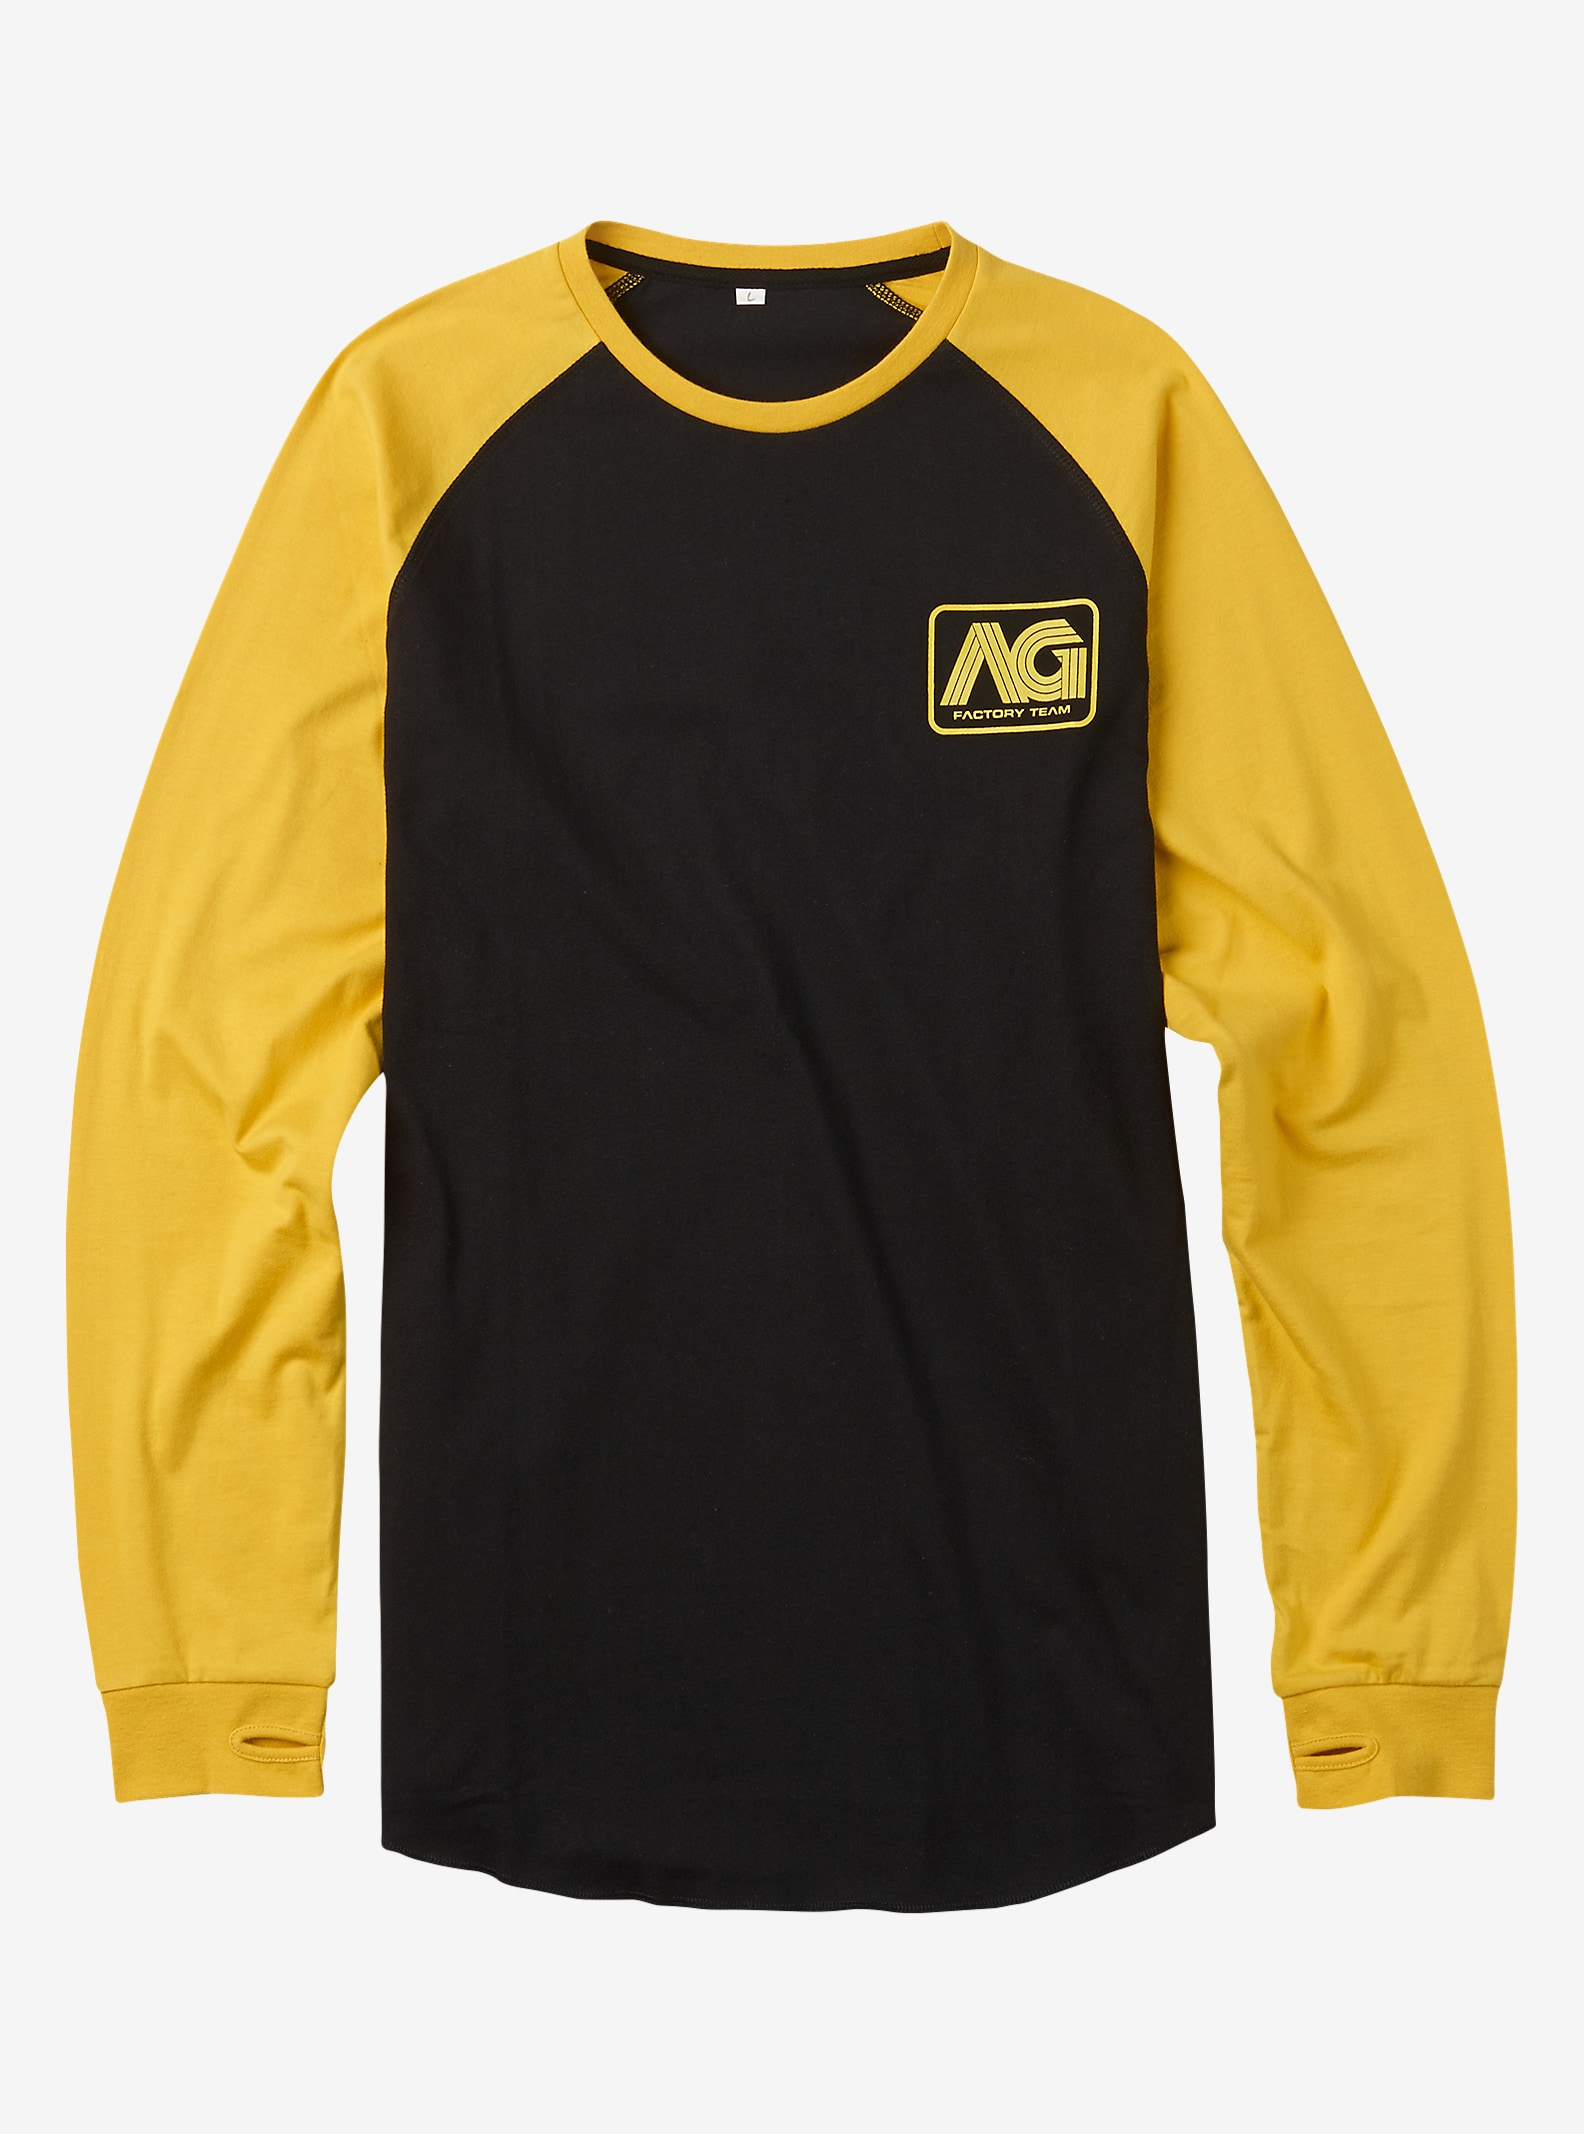 Analog Agonize Long Sleeve T-Shirt shown in True Black